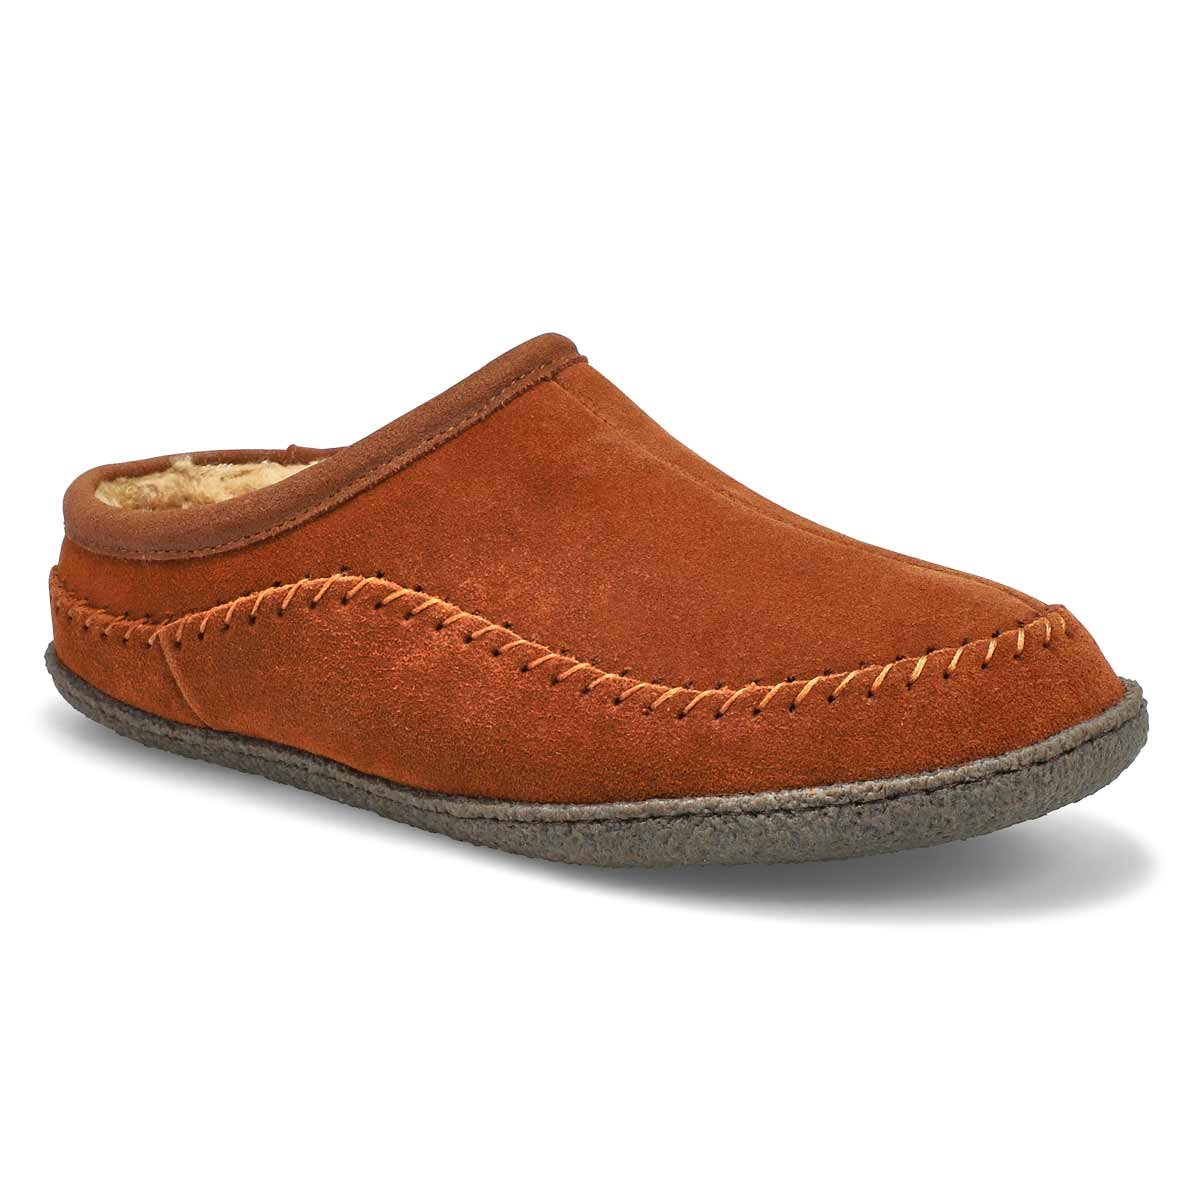 Men's PAULY III spice suede open slippers